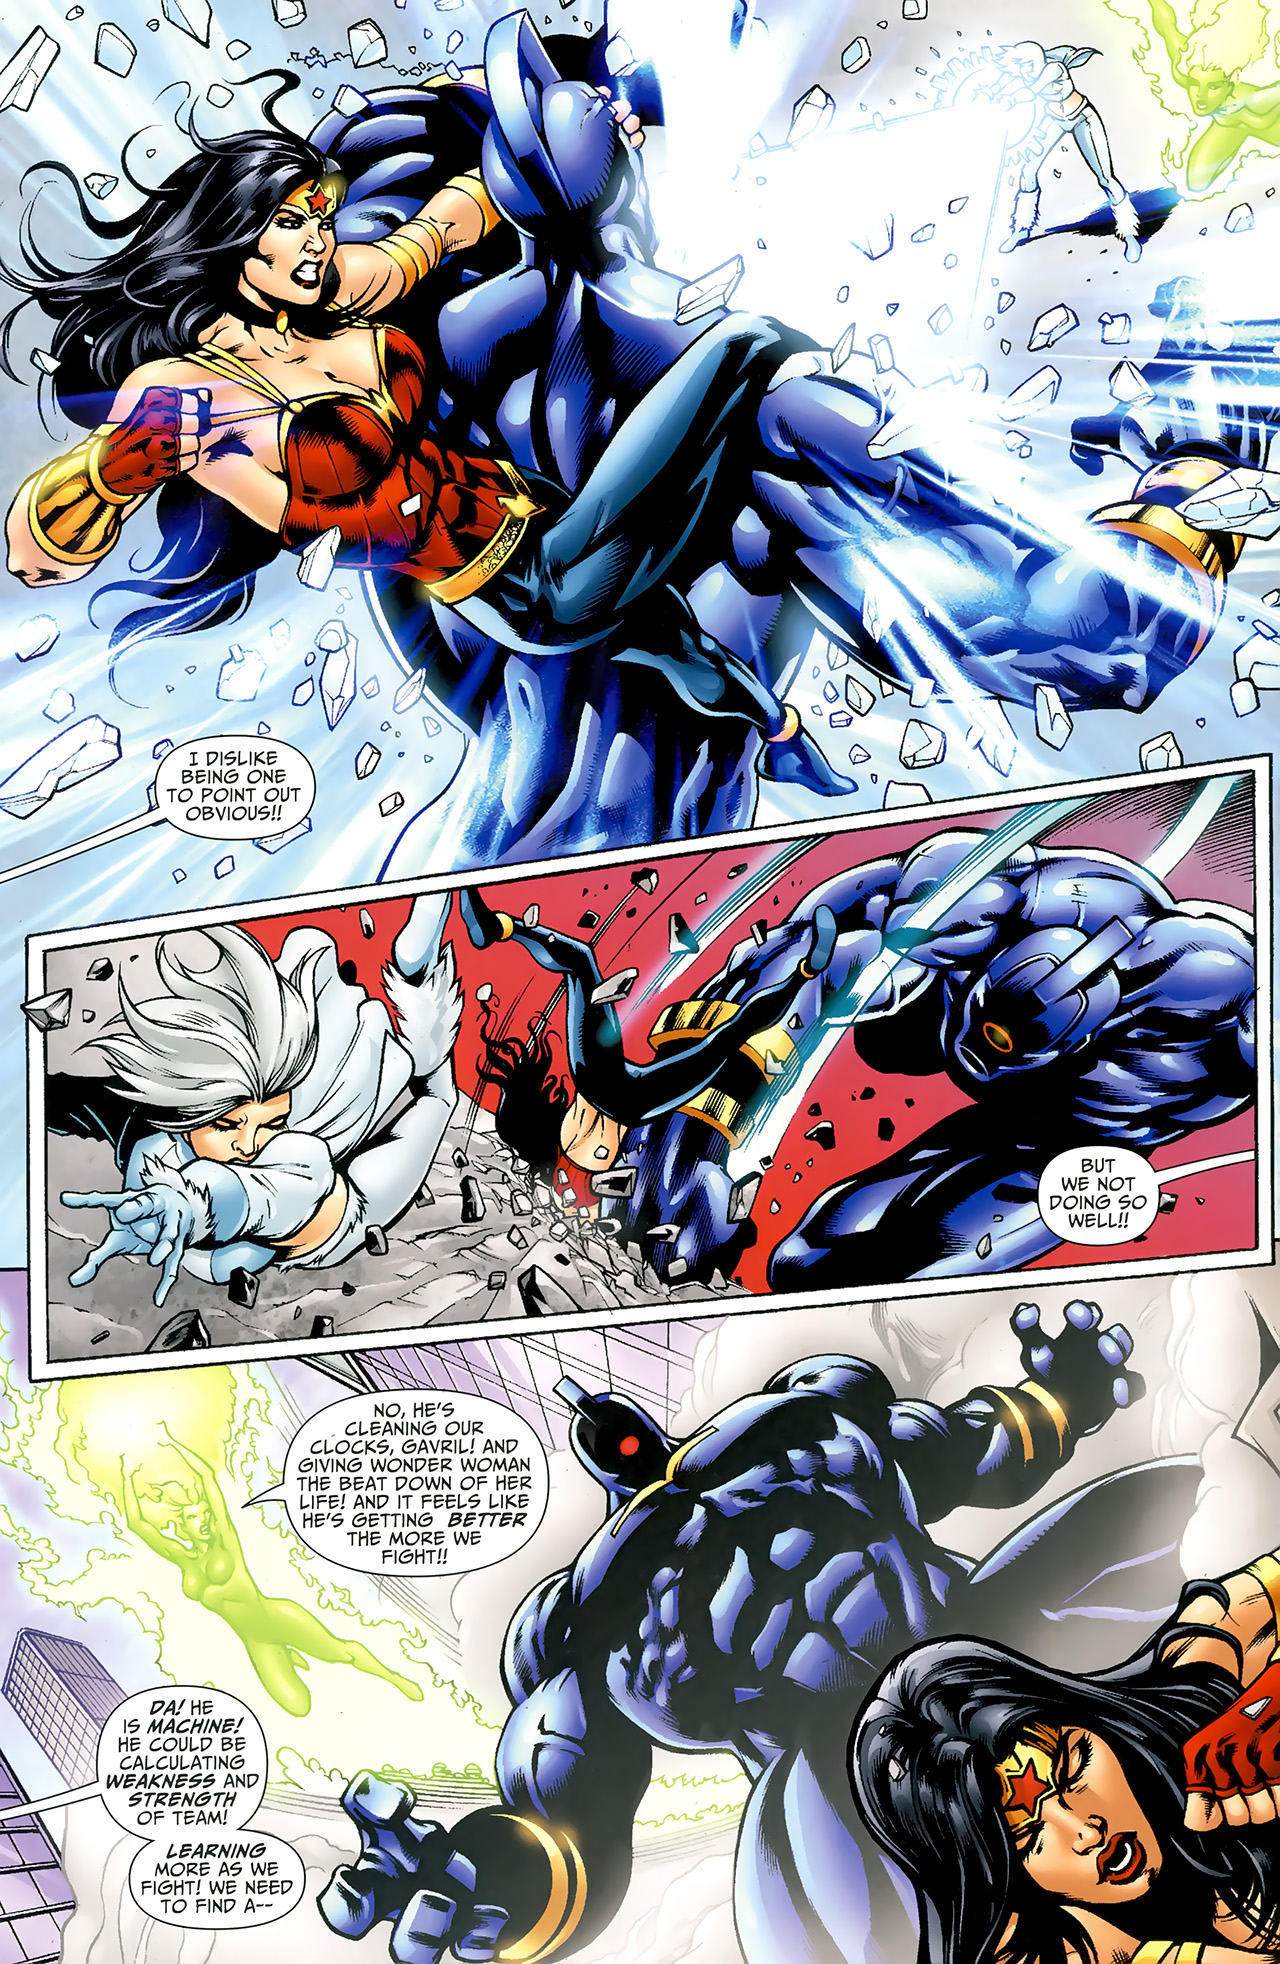 Read online Justice League: Generation Lost comic -  Issue #23 - 20